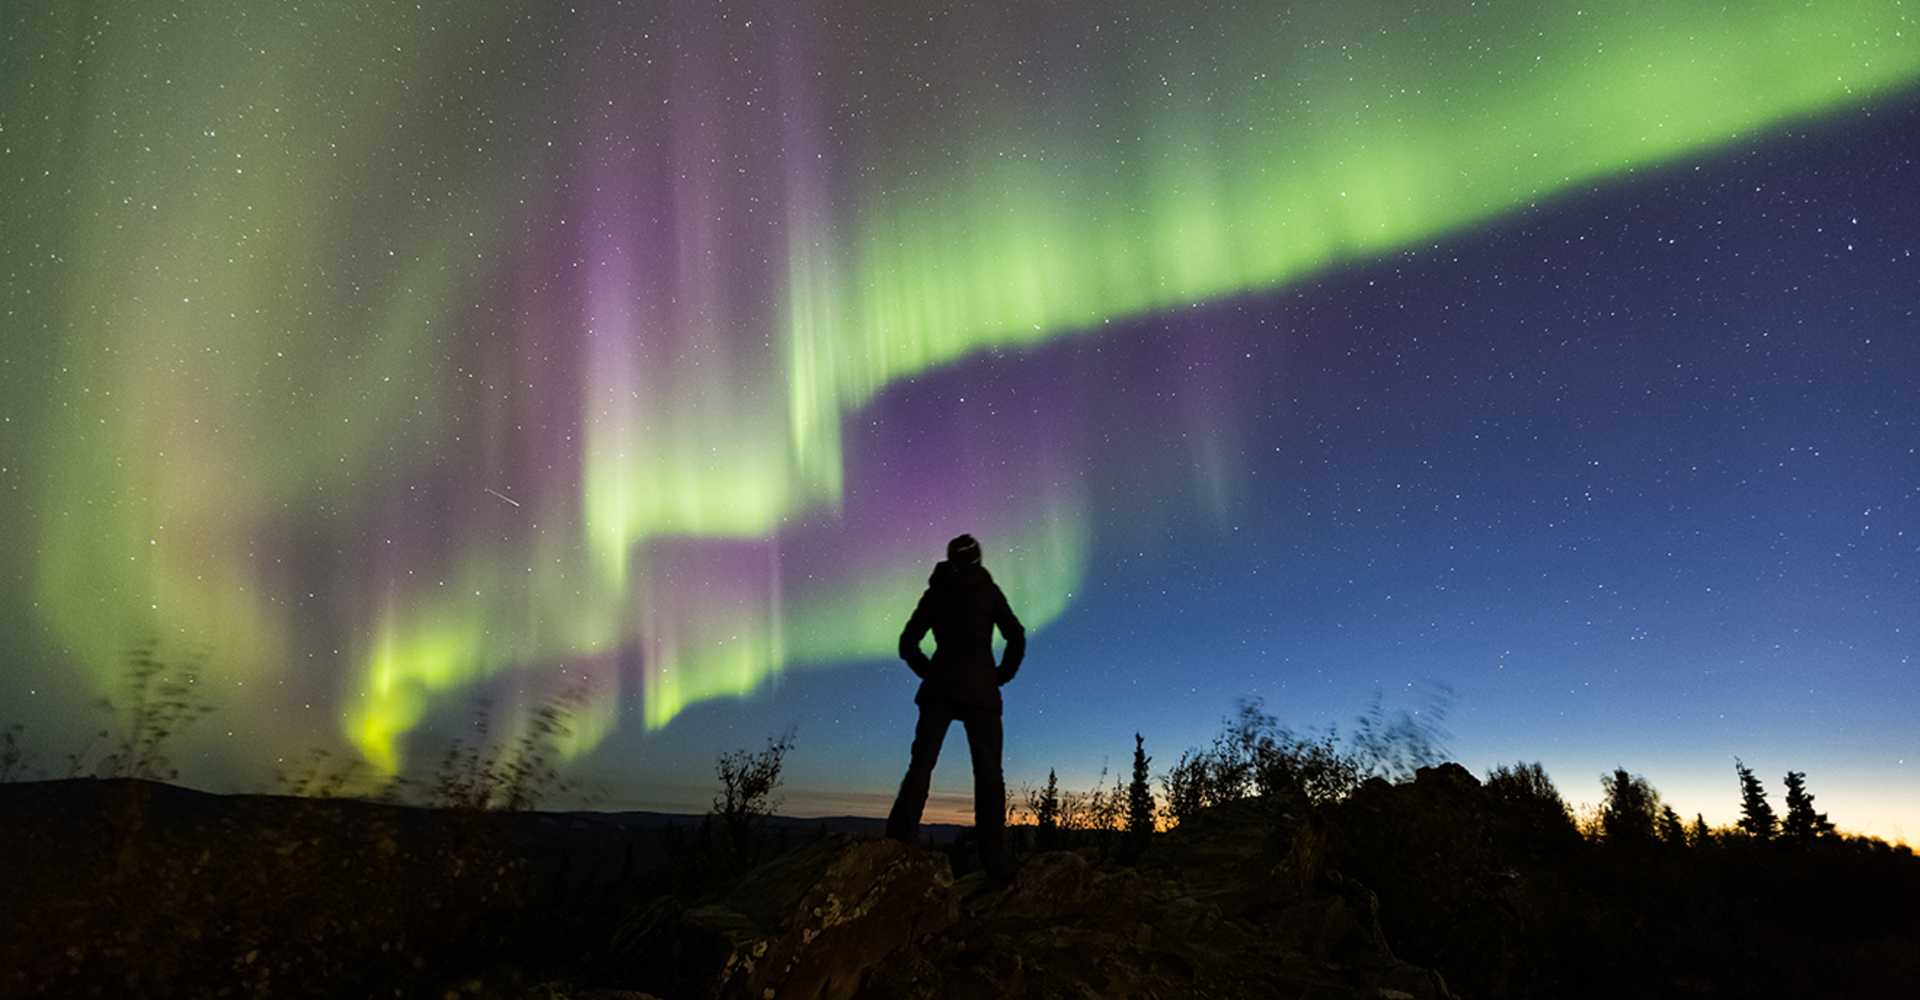 Best Time To See Northern Lights In Alaska 2019 Aurora Borealis Season | Explore Fairbanks, Alaska